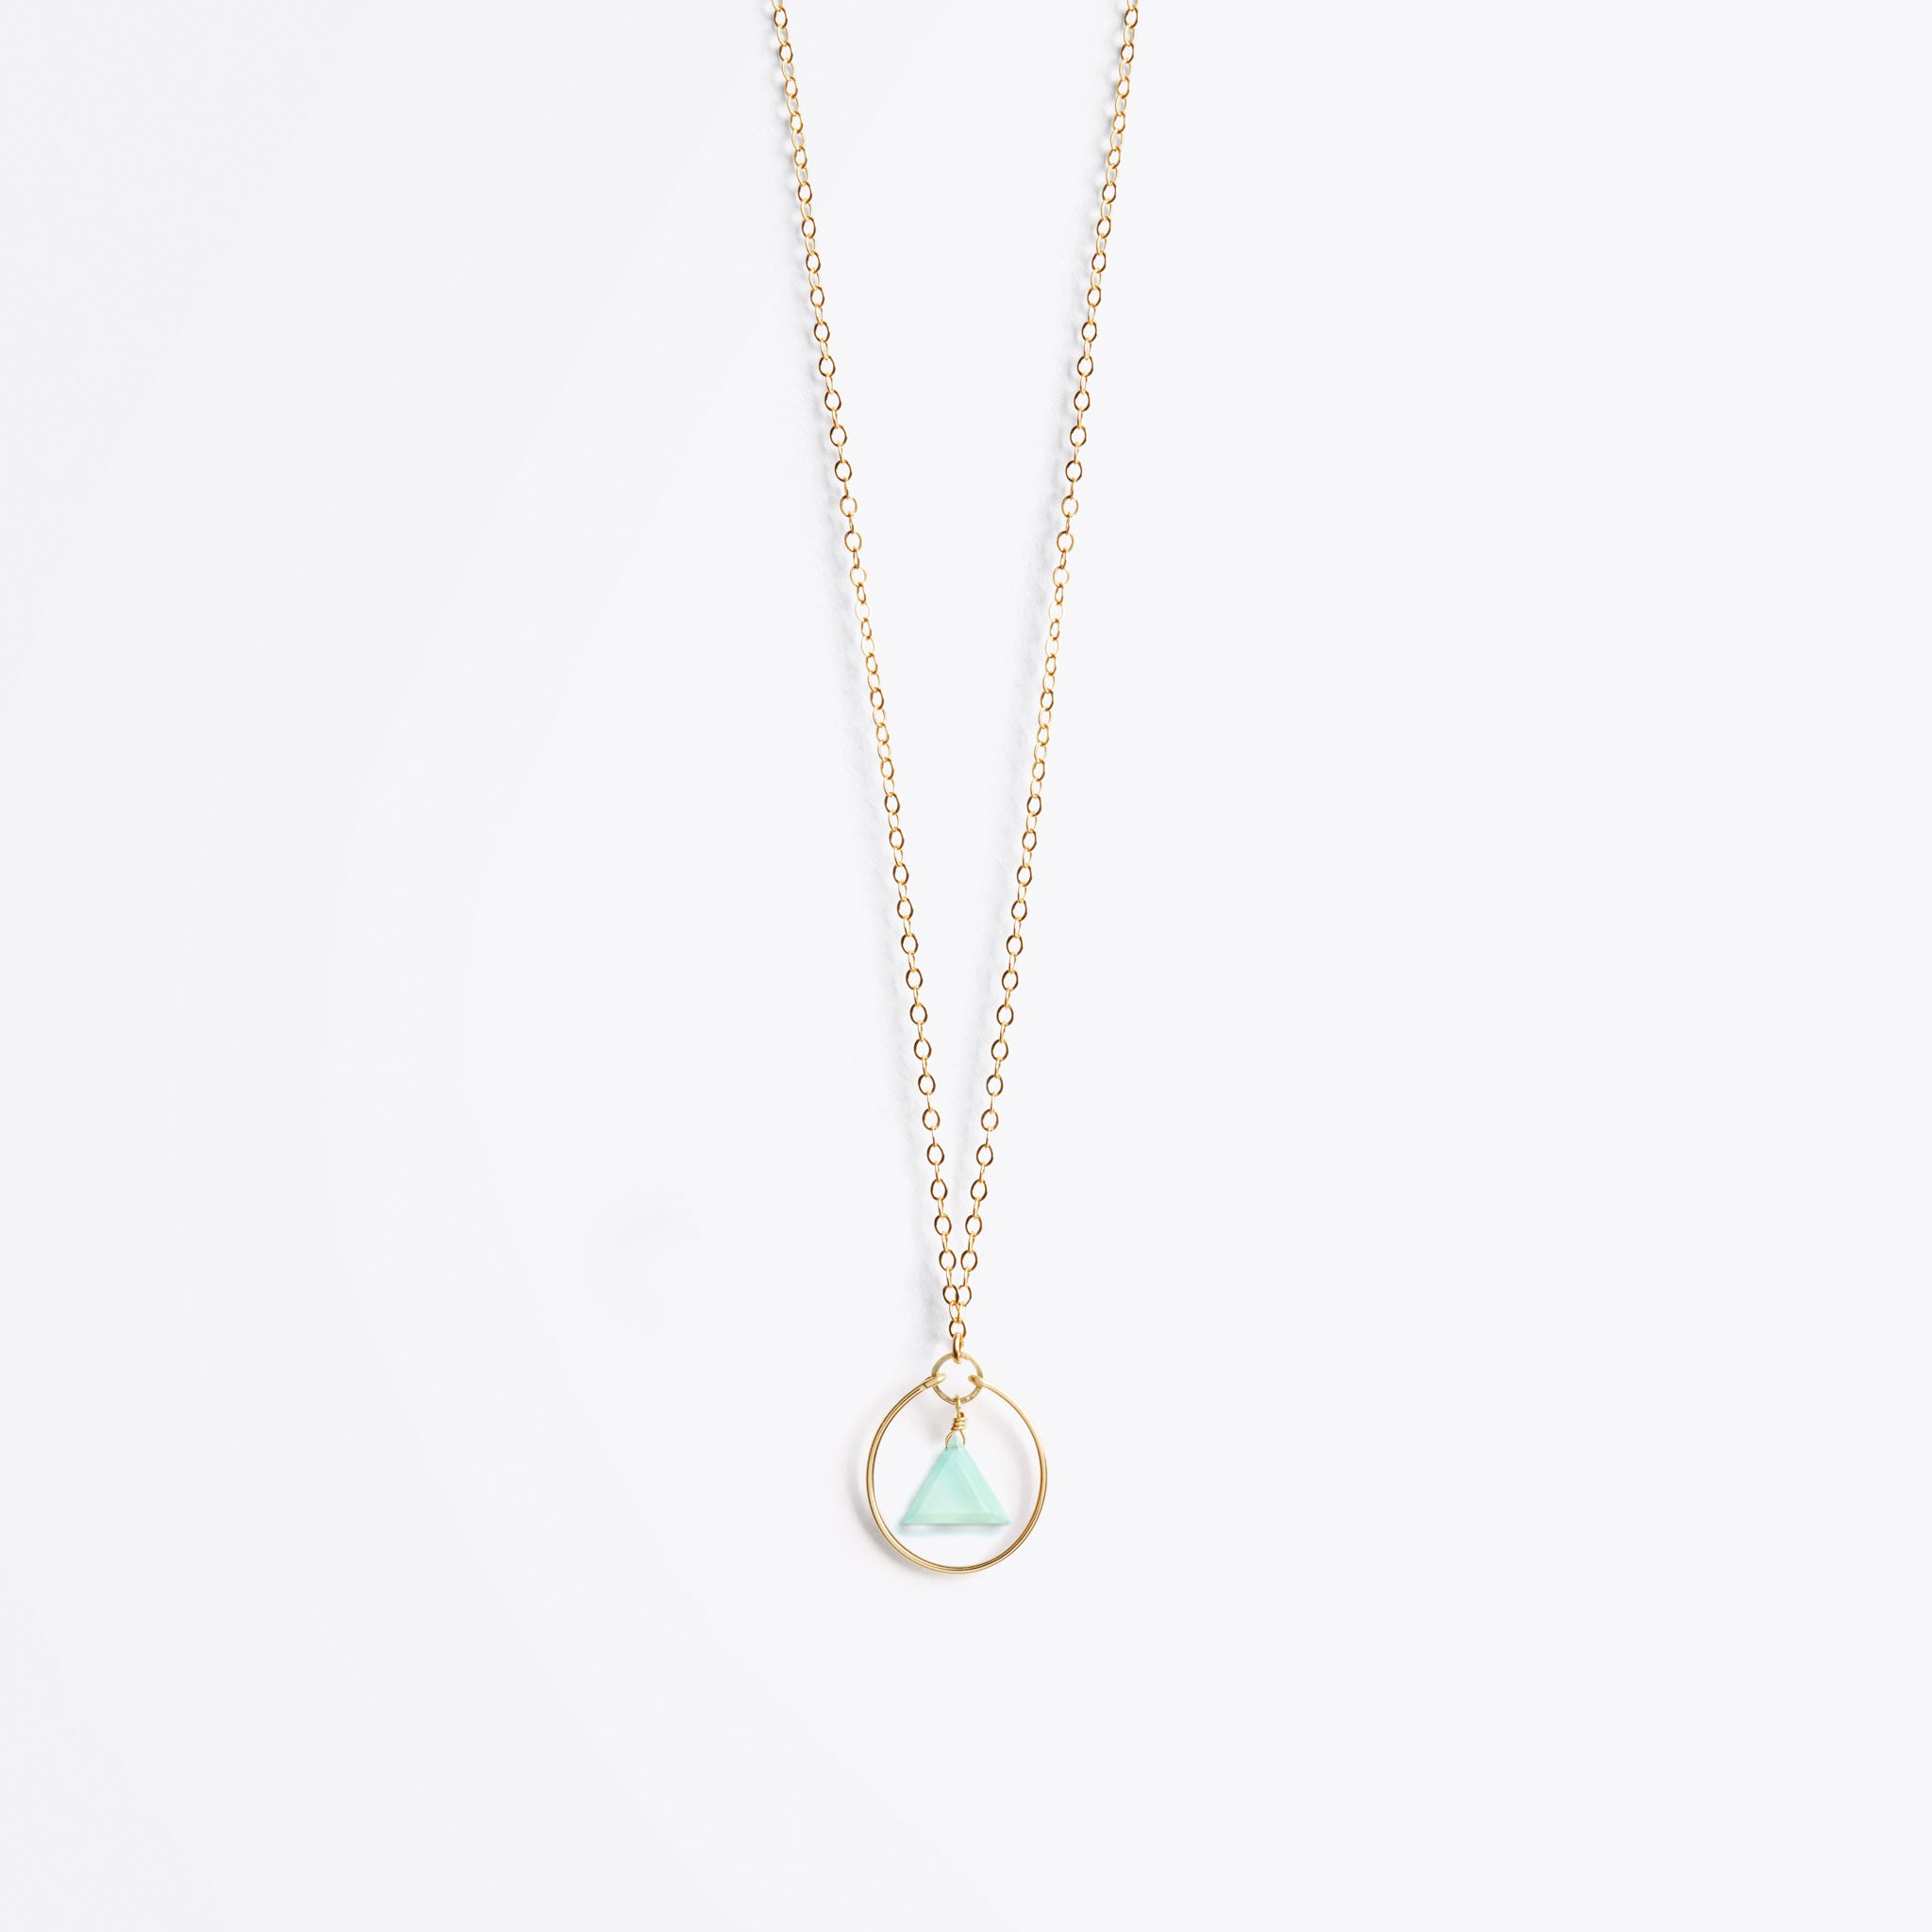 stella prism gold chain necklace | sea glass chalcedony